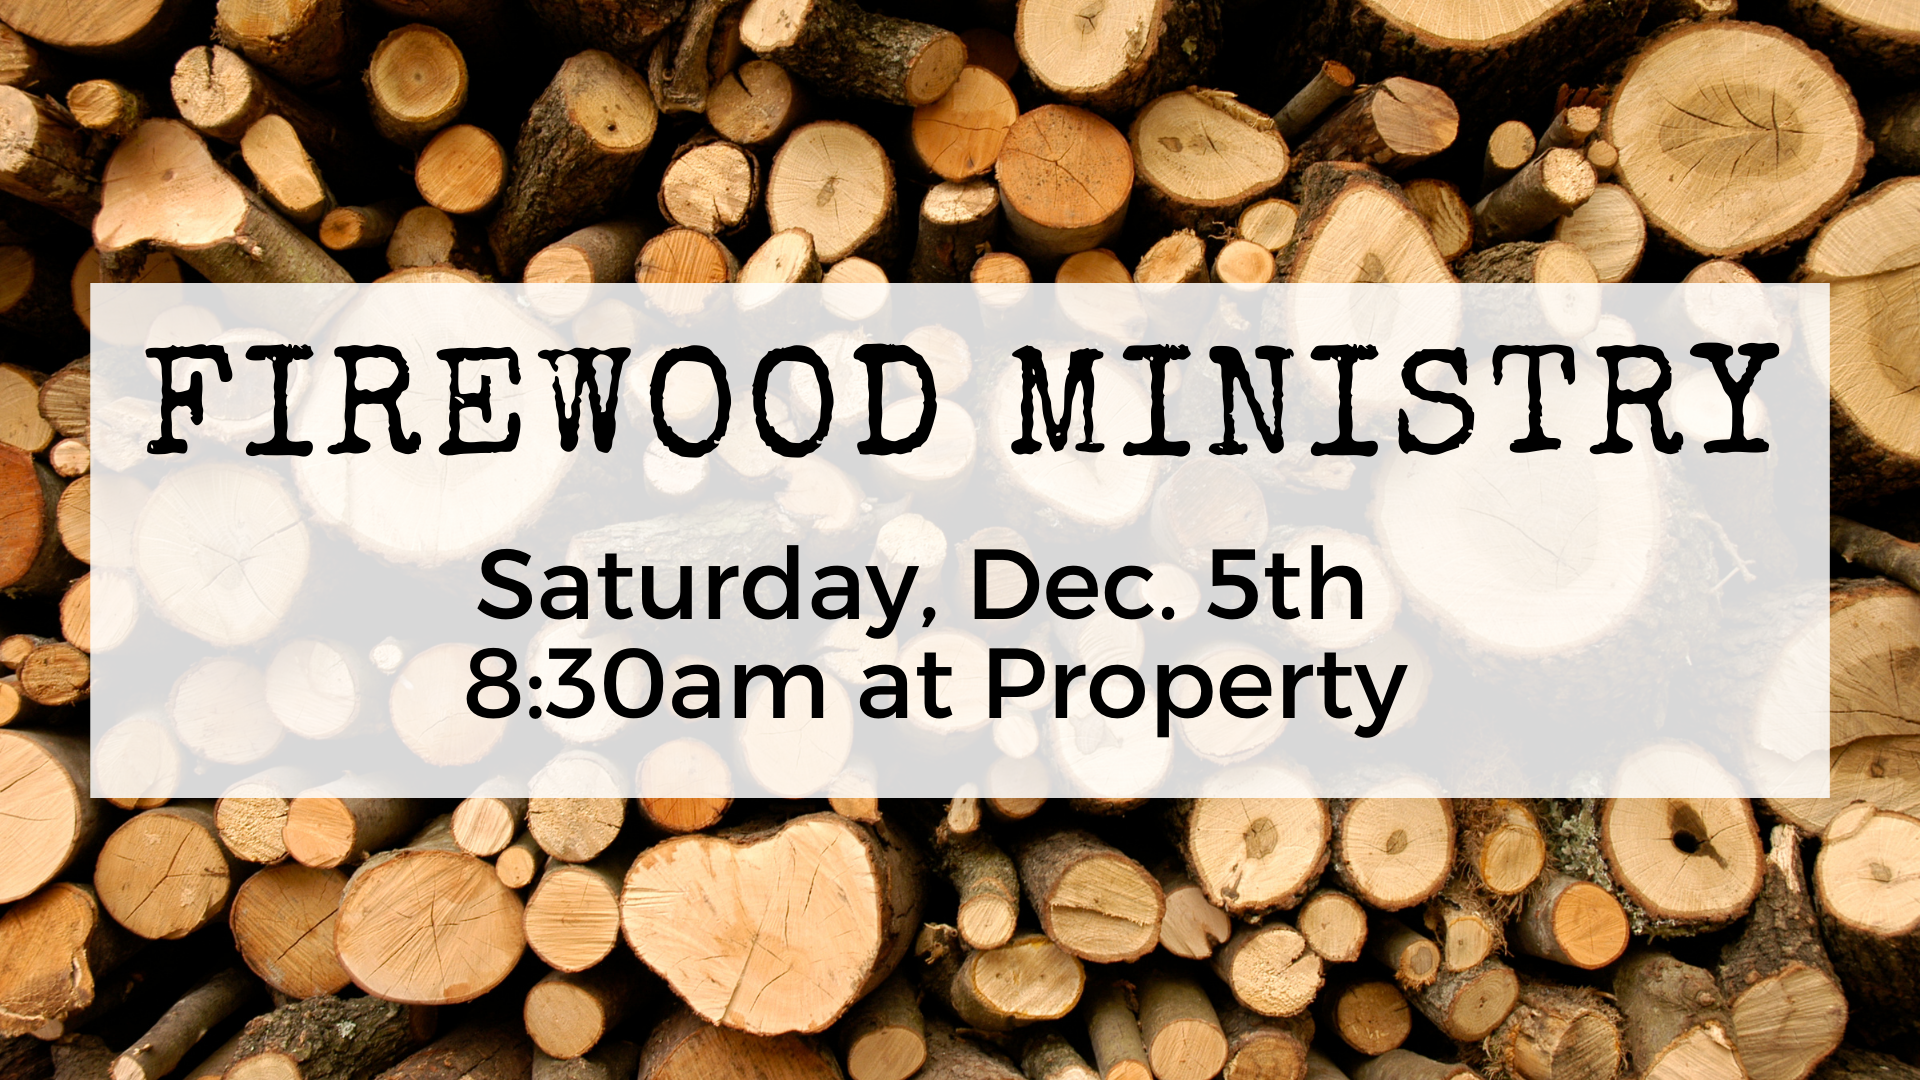 Copy of Firewood ministry